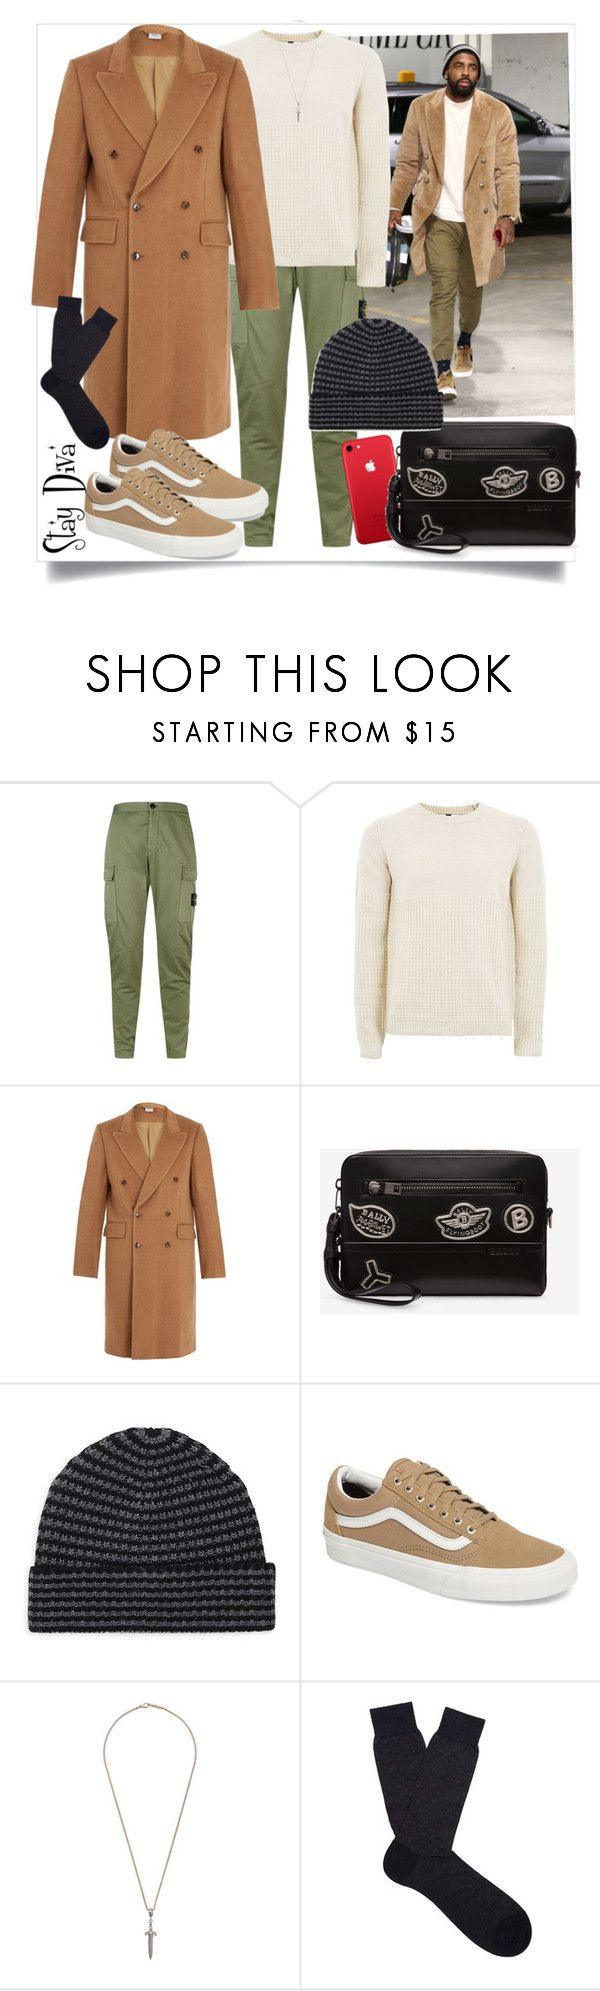 """Kyrie Irving"" by staydiva ❤ liked on Polyvore featuring STONE ISLAND, Topman, Vetements, Bally, Saks Fifth Avenue, Vans, Roman Paul, Pantherella, men's fashion and menswear"